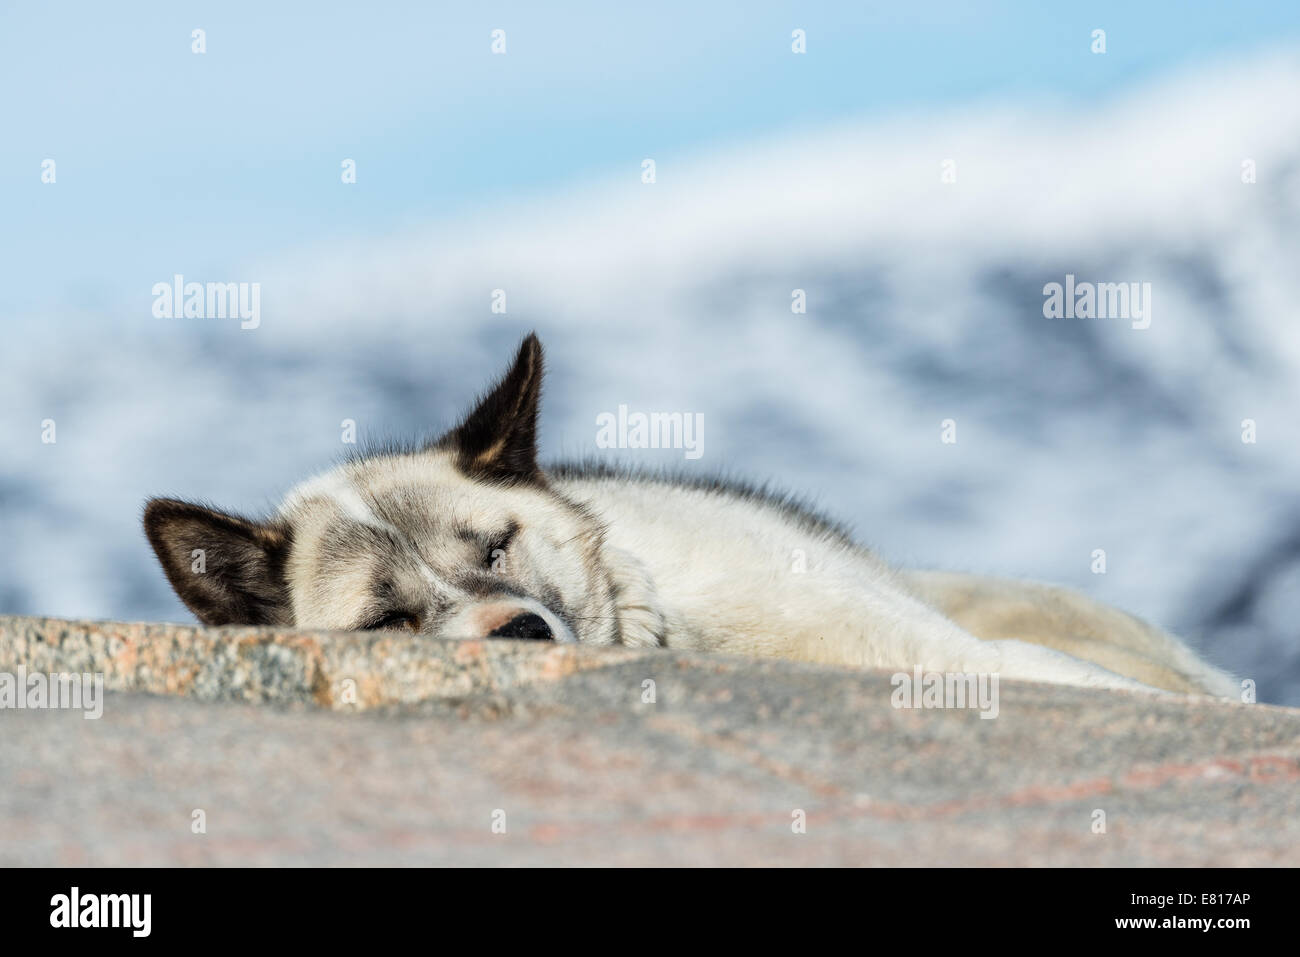 Sled dog asleep on a rock. Ilulissat, Greenland - Stock Image